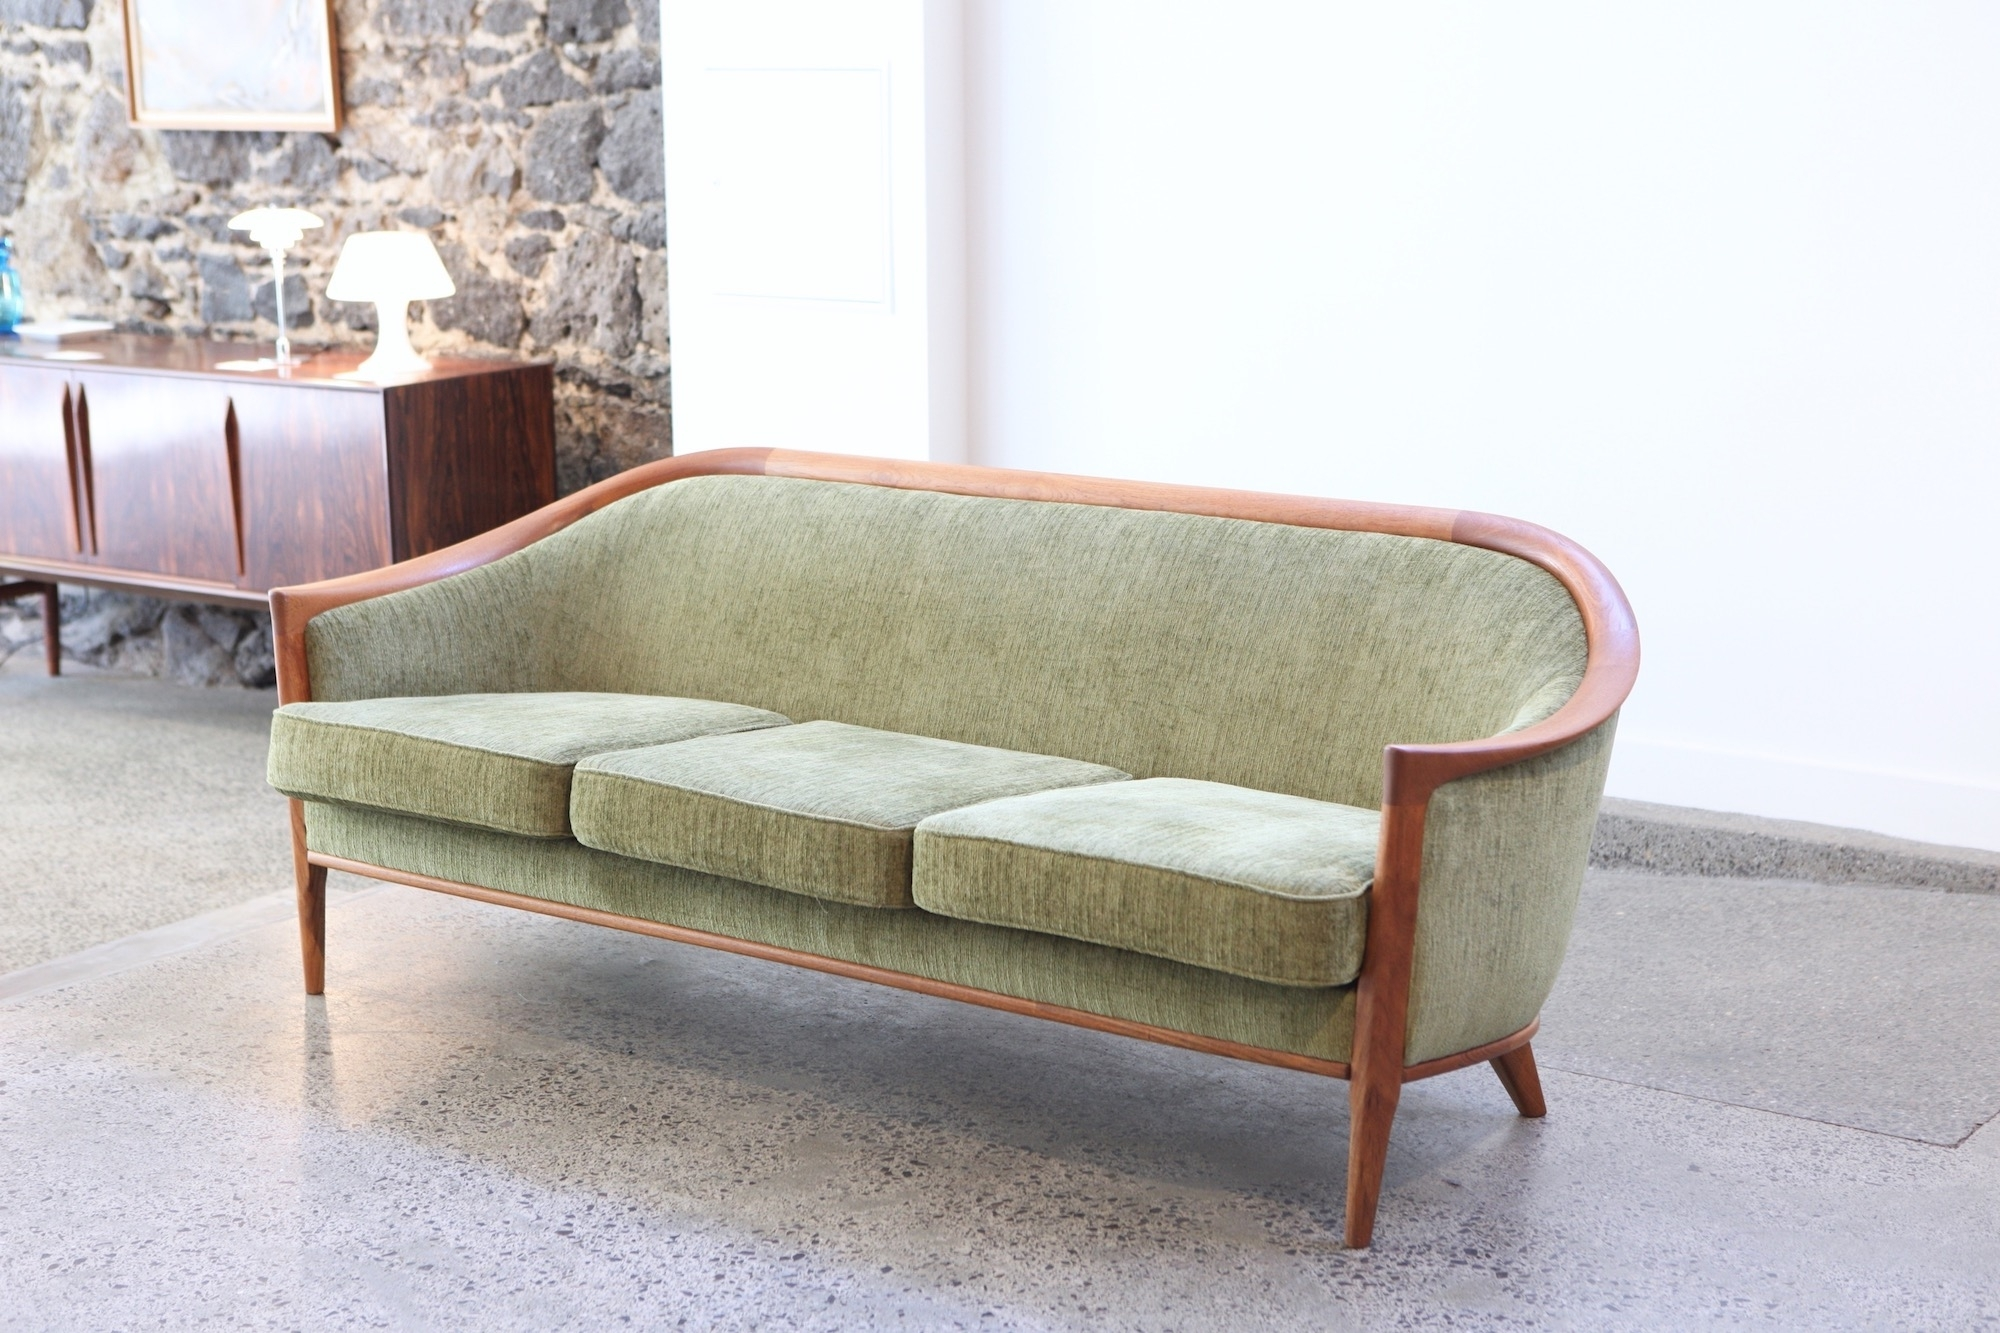 Vintage Sofas - Radar within Trendy Vintage Sofas